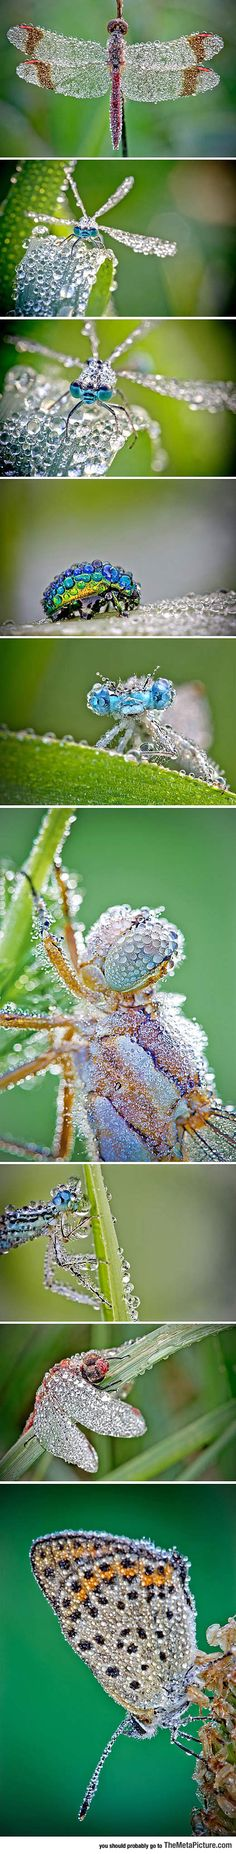 Can I get a piece of jewelry that actually looks like these bugs? These beautiful insects covered in rain drop gems.